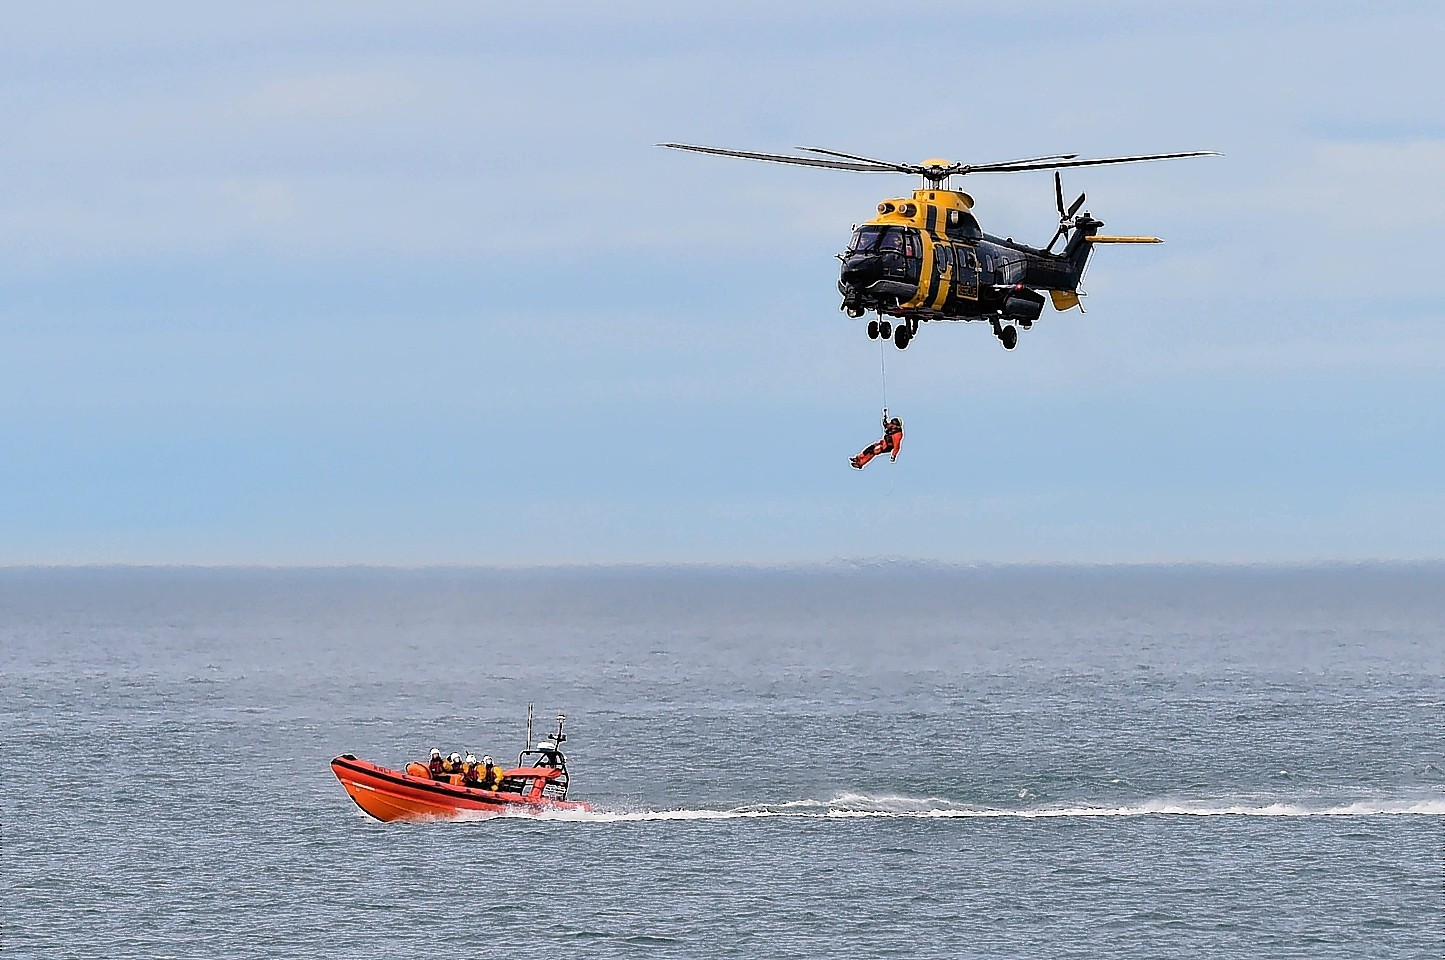 Macduff Lifeboat will be joined by the Coastguard for the gala day.